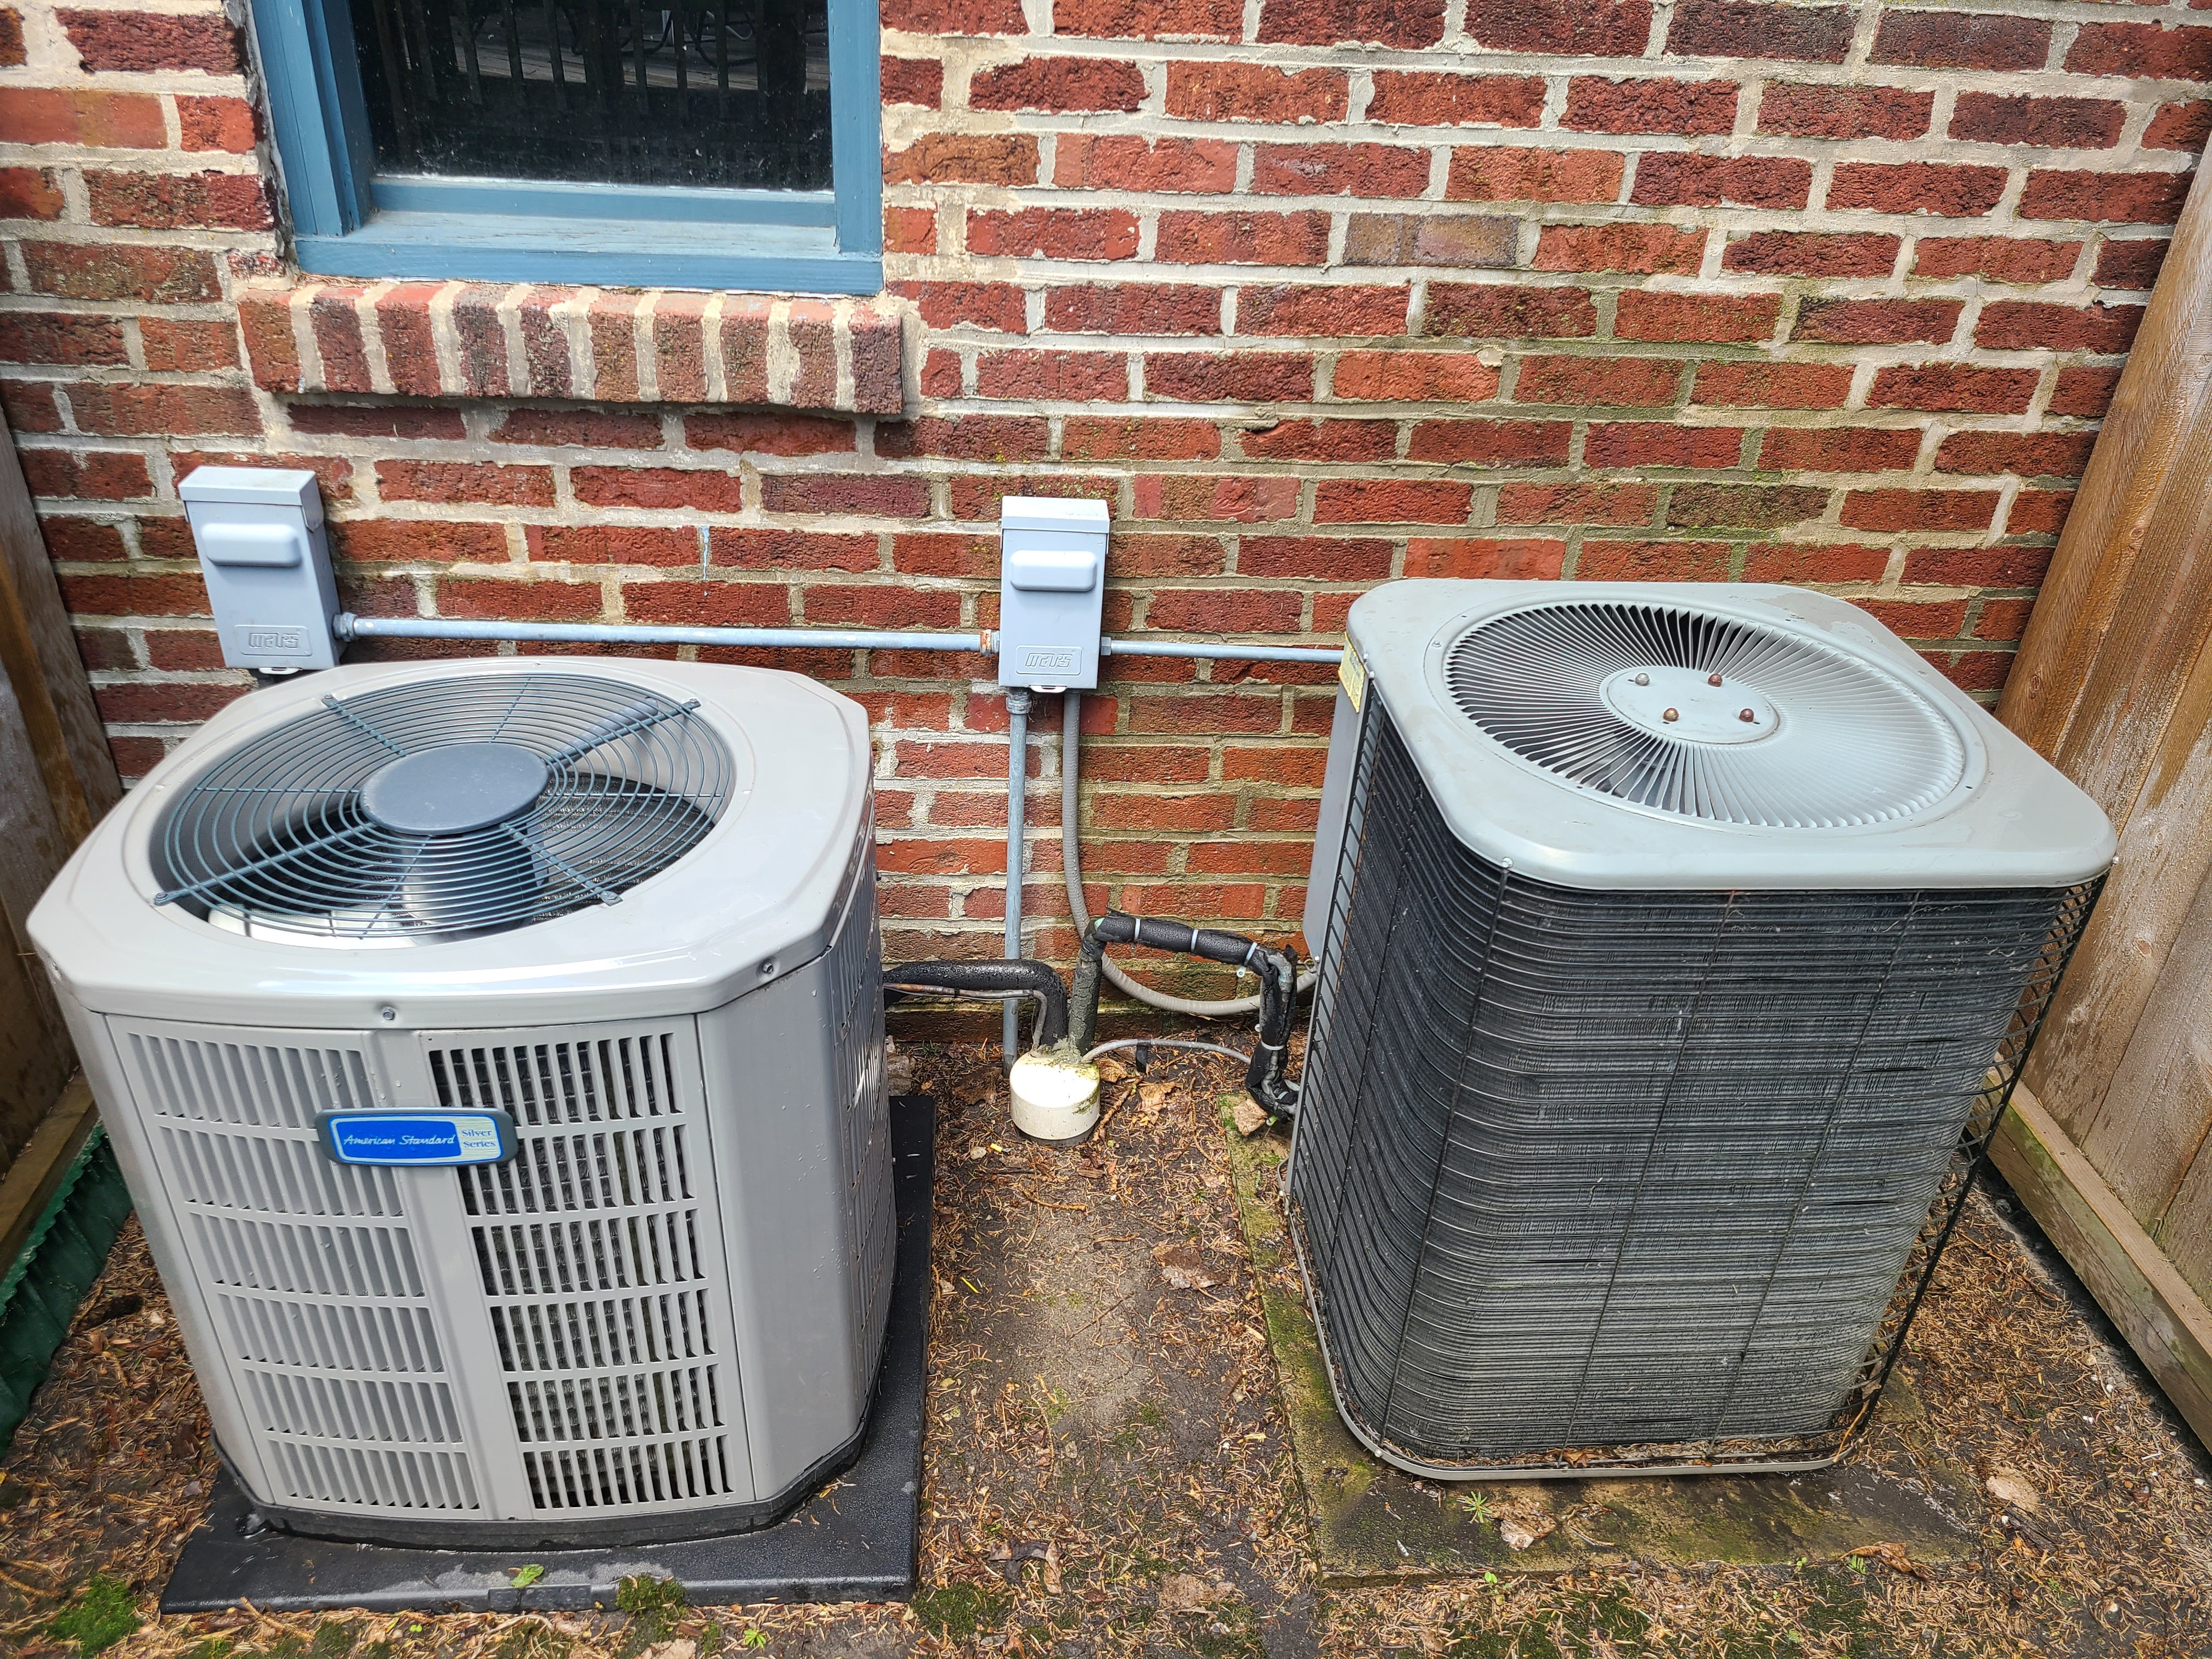 Performed routine maintenance on a Lennox and an American Standard unit. Checked voltage, amperage, temperatures, pressures, and microfarads. Washed condenser coils thoroughly.